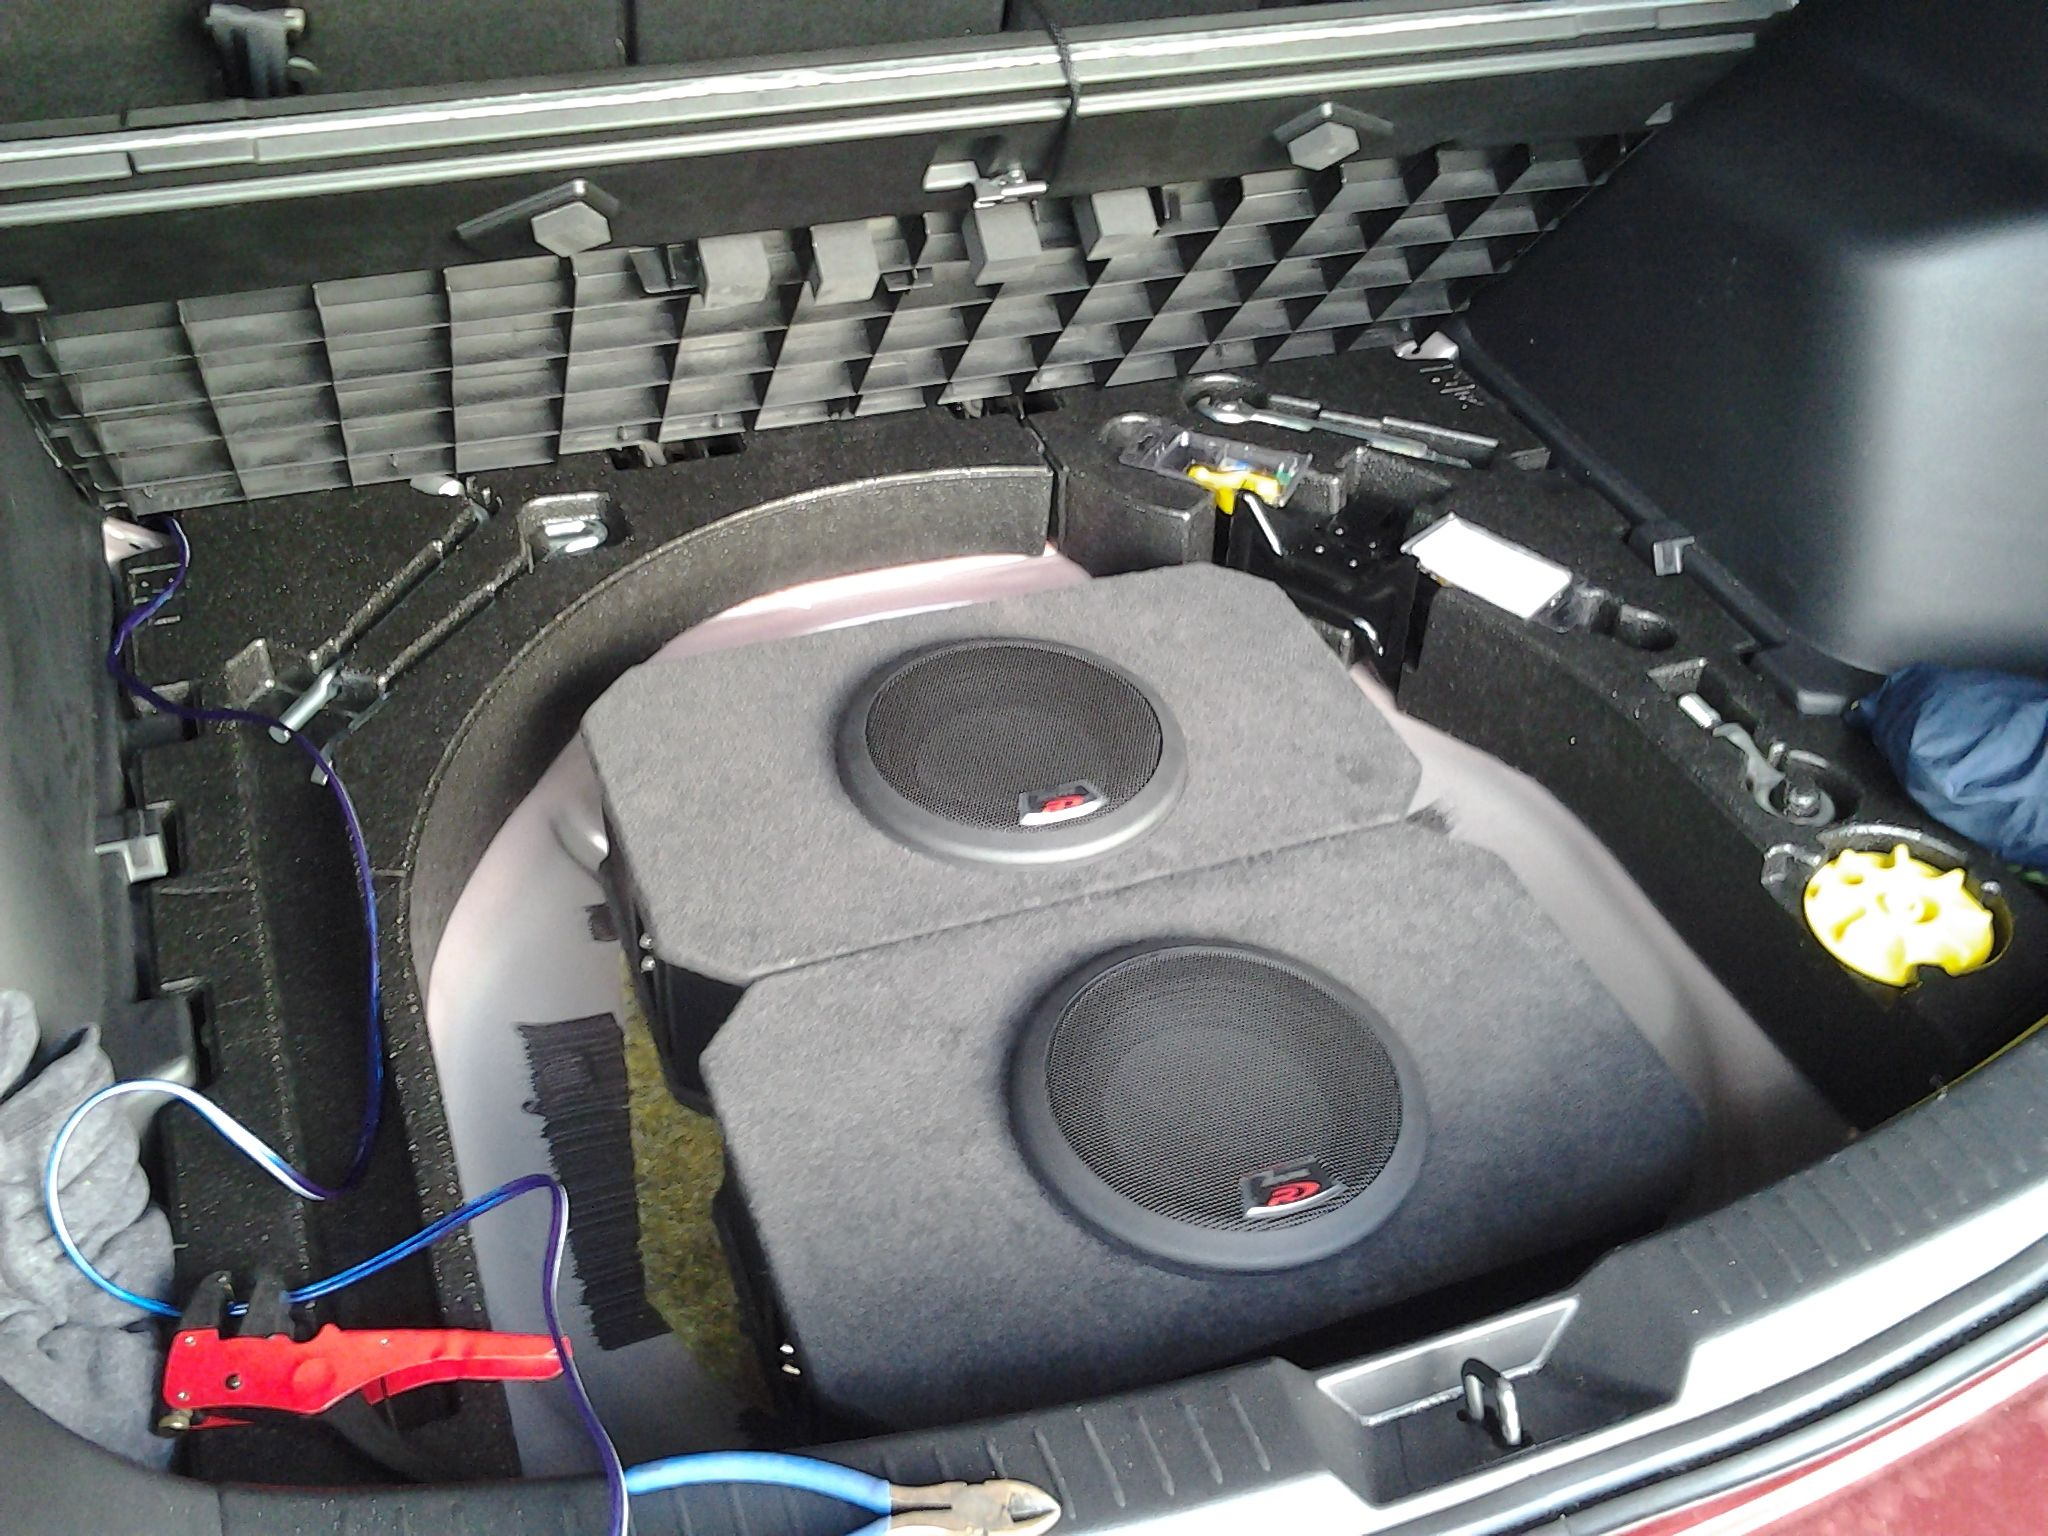 Subwoofer? - Page 3 - Mazda Forum - Mazda Enthusiast Forums